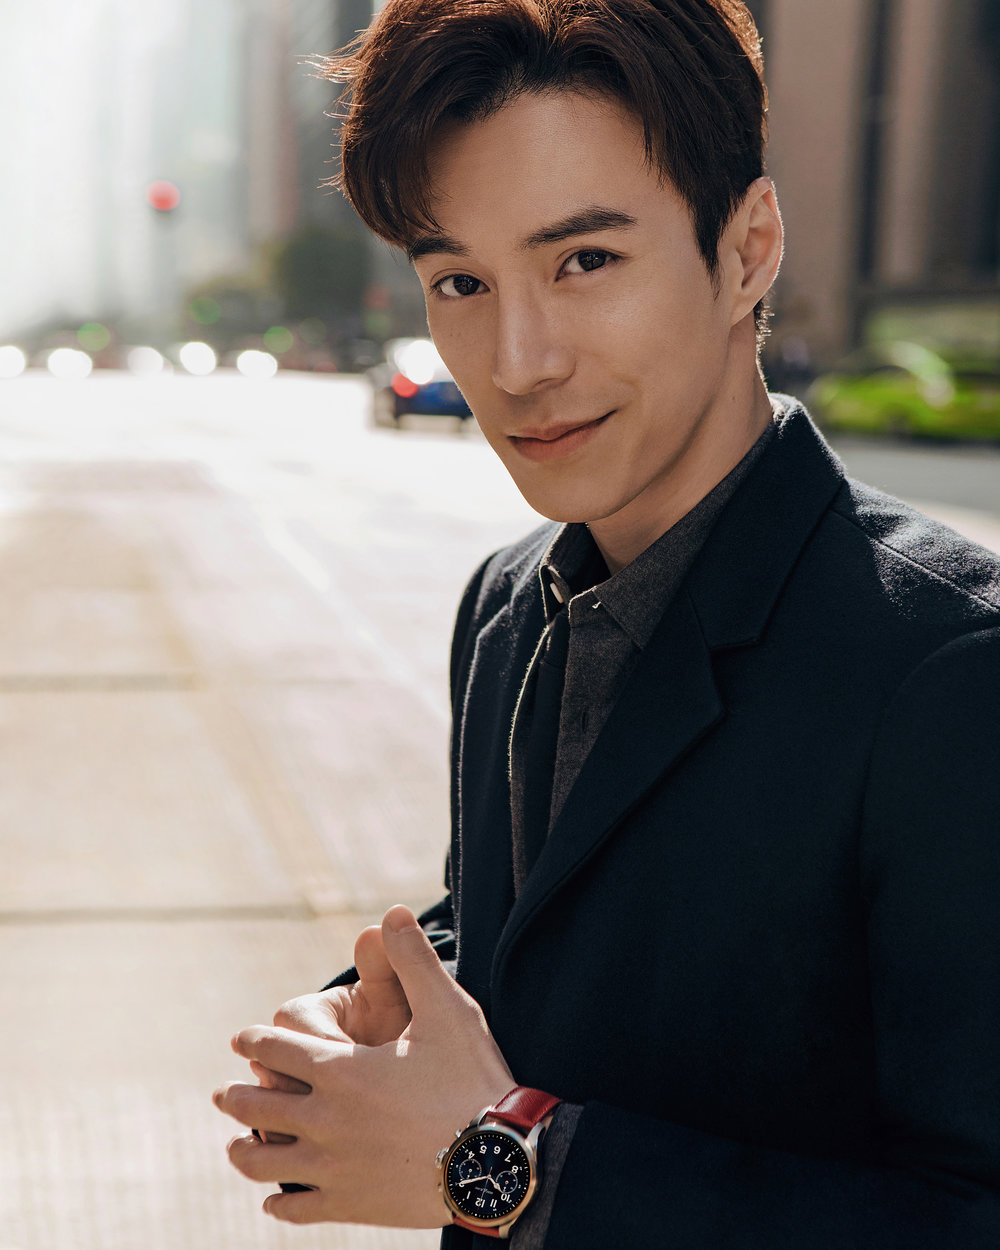 the_laterals_x_montblanc_lawrence_wong_02.jpg